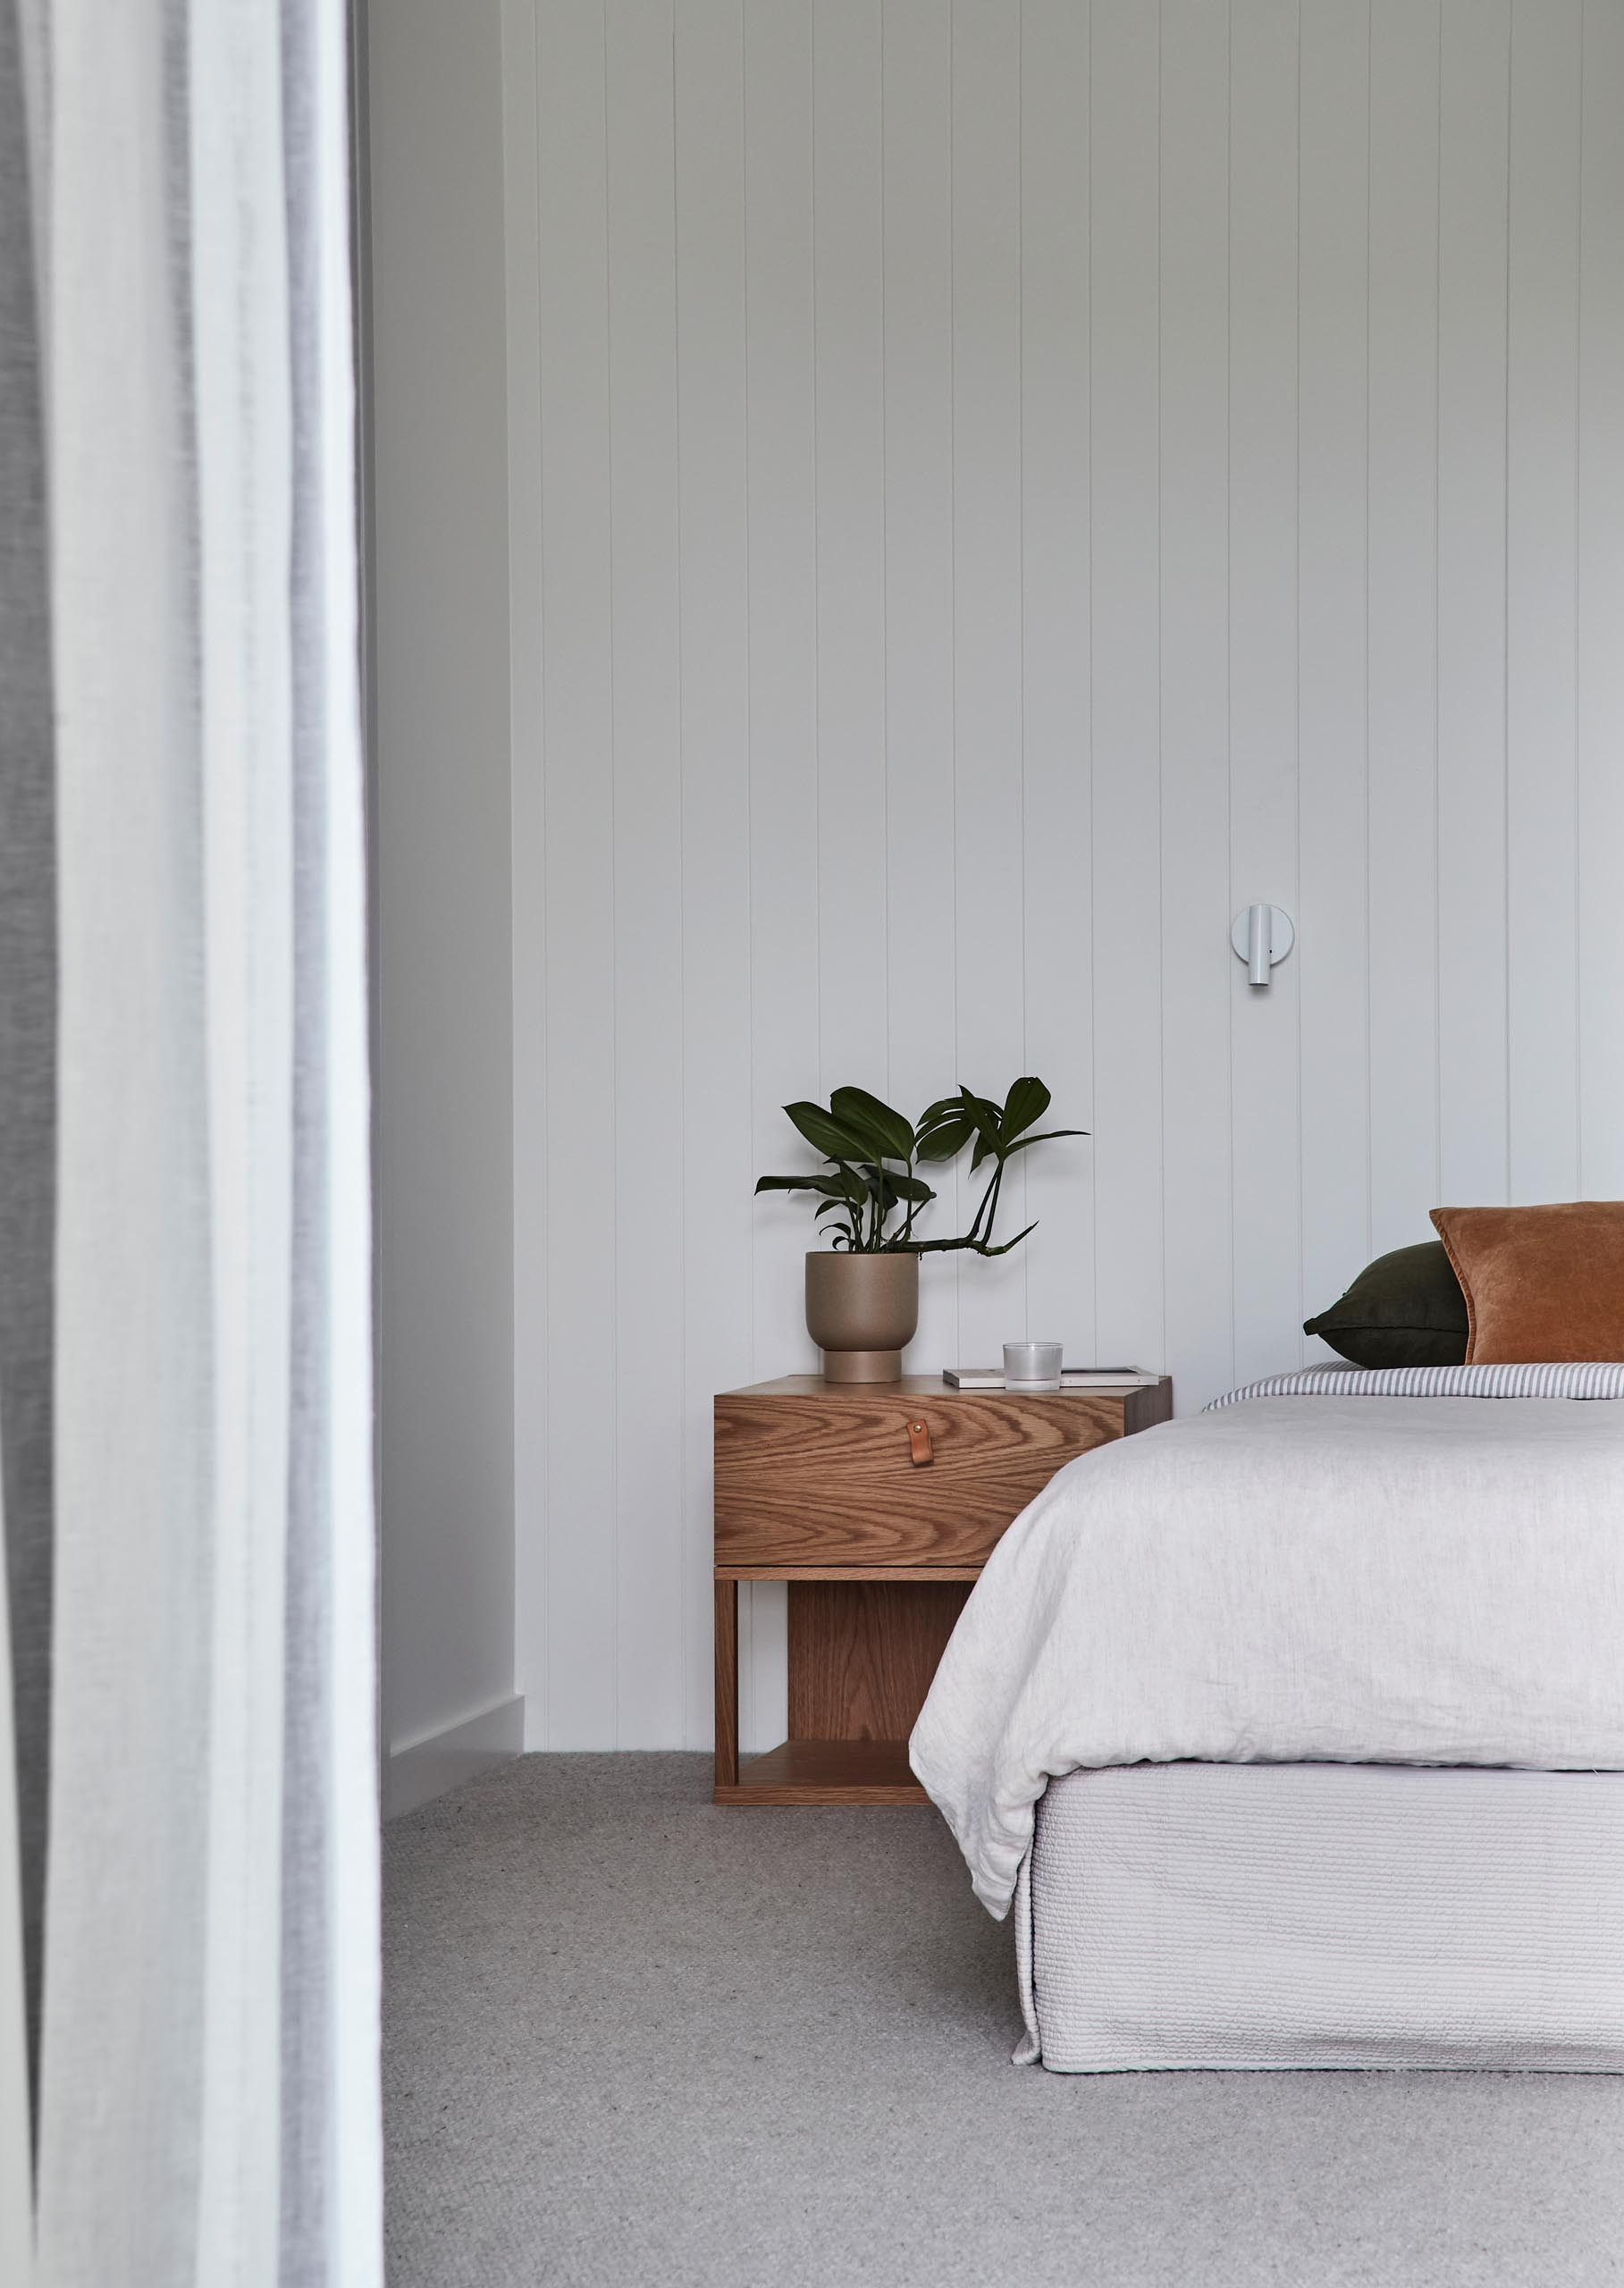 In this modern bedroom, the design has been kept minimal, while the wood and leather accents reference the other areas of the home.